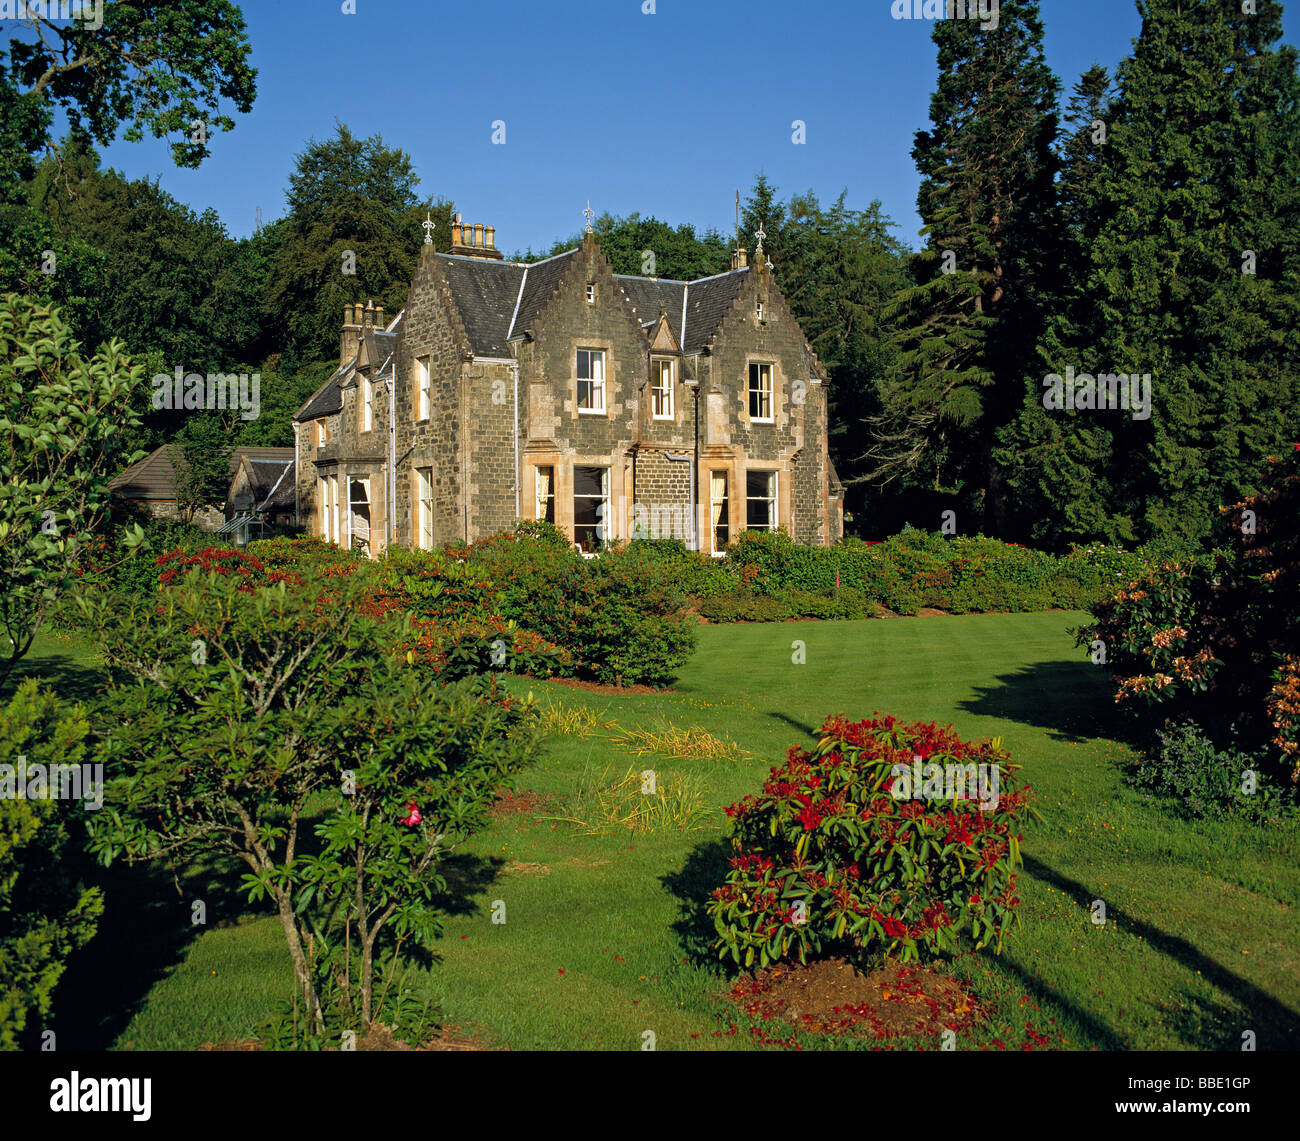 Scottish country house set in large garden in Summer, UK. Stock Photo